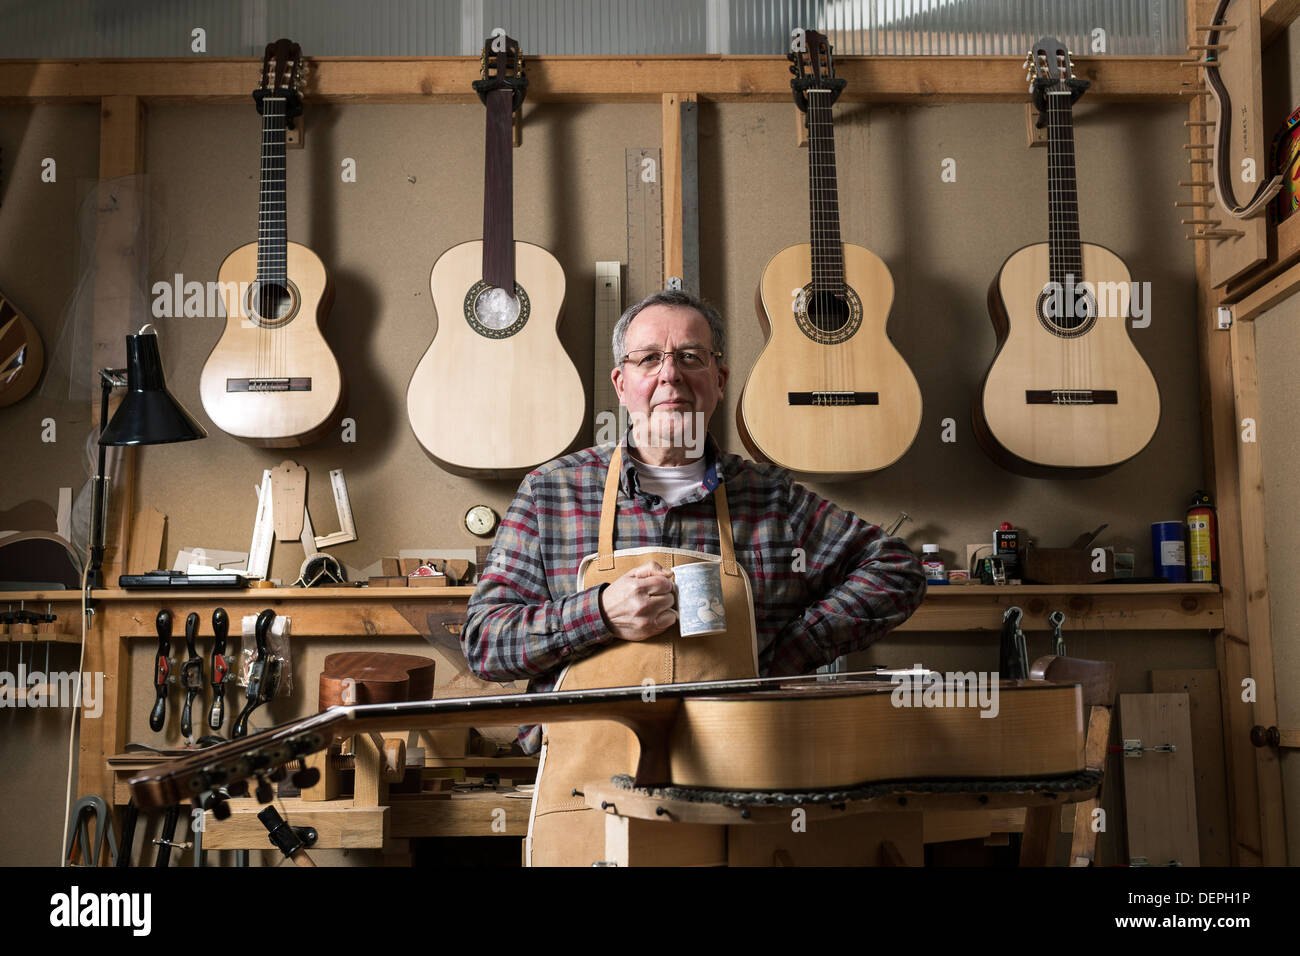 Guitar maker standing in workshop, portrait - Stock Image